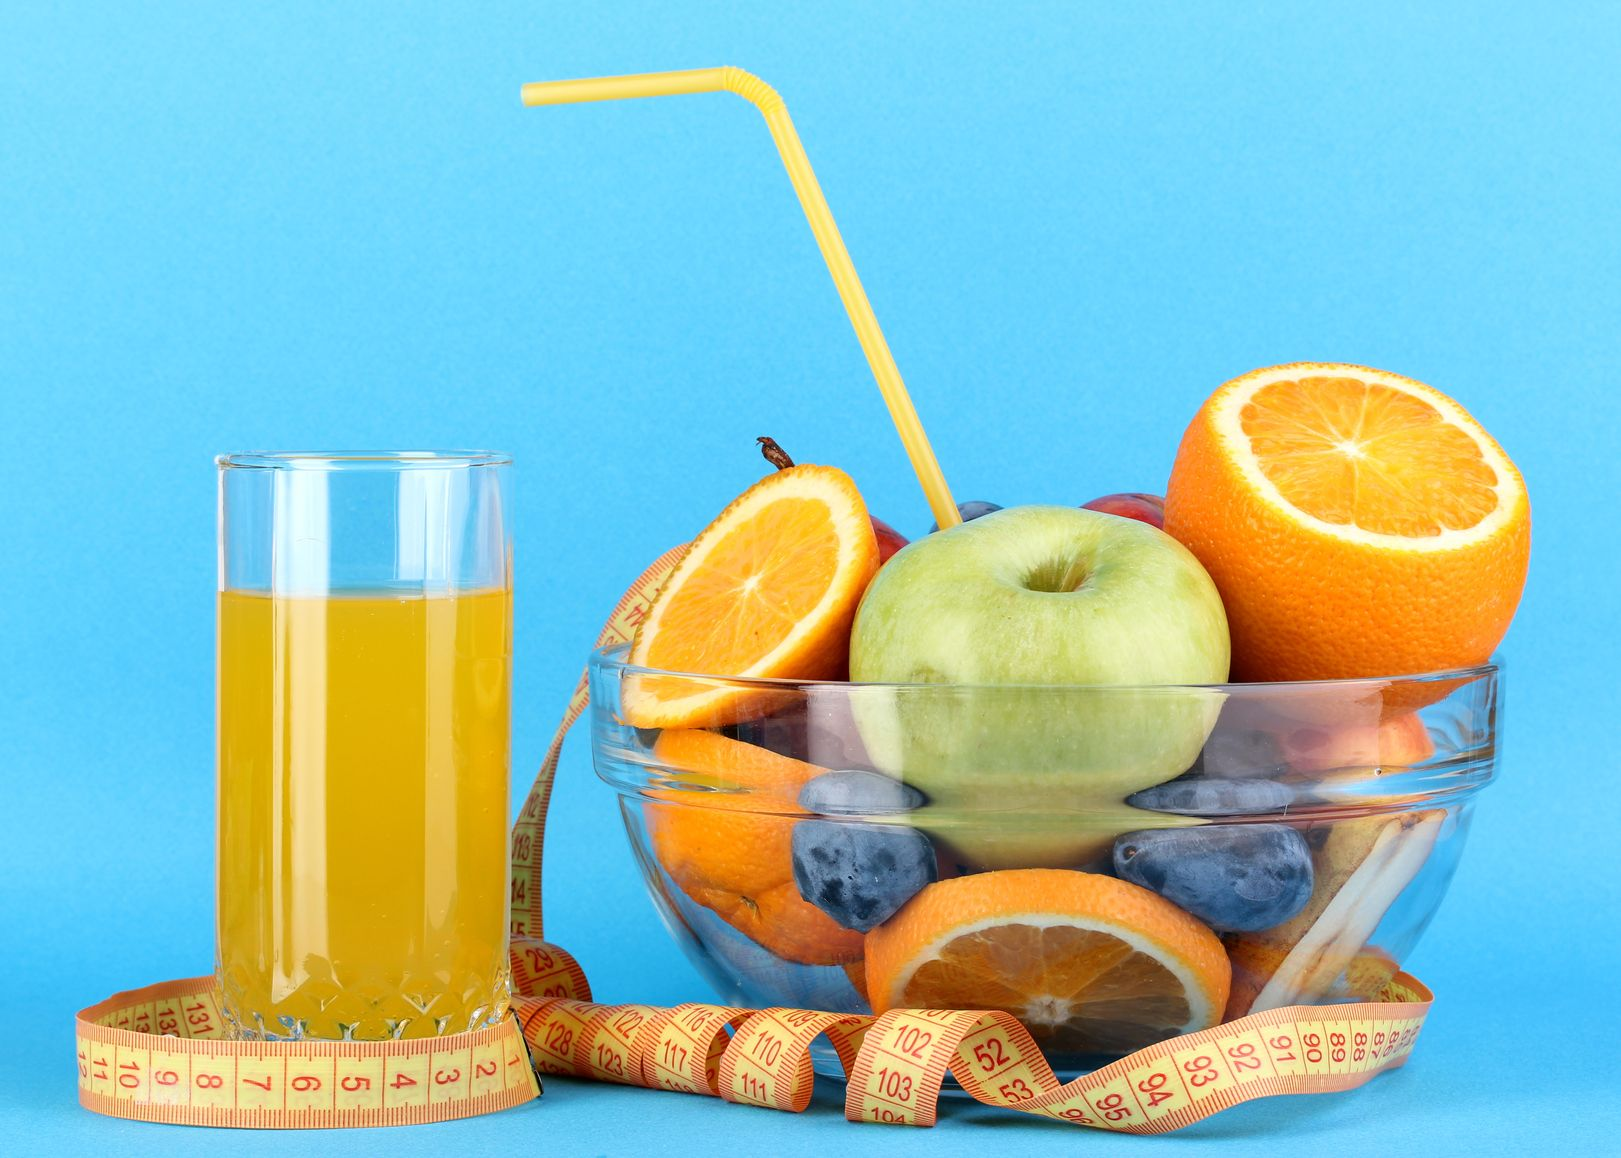 Detox day which cleanse is right for you weekly sauce glass bowl with fruit for diet and juice on blue background malvernweather Choice Image